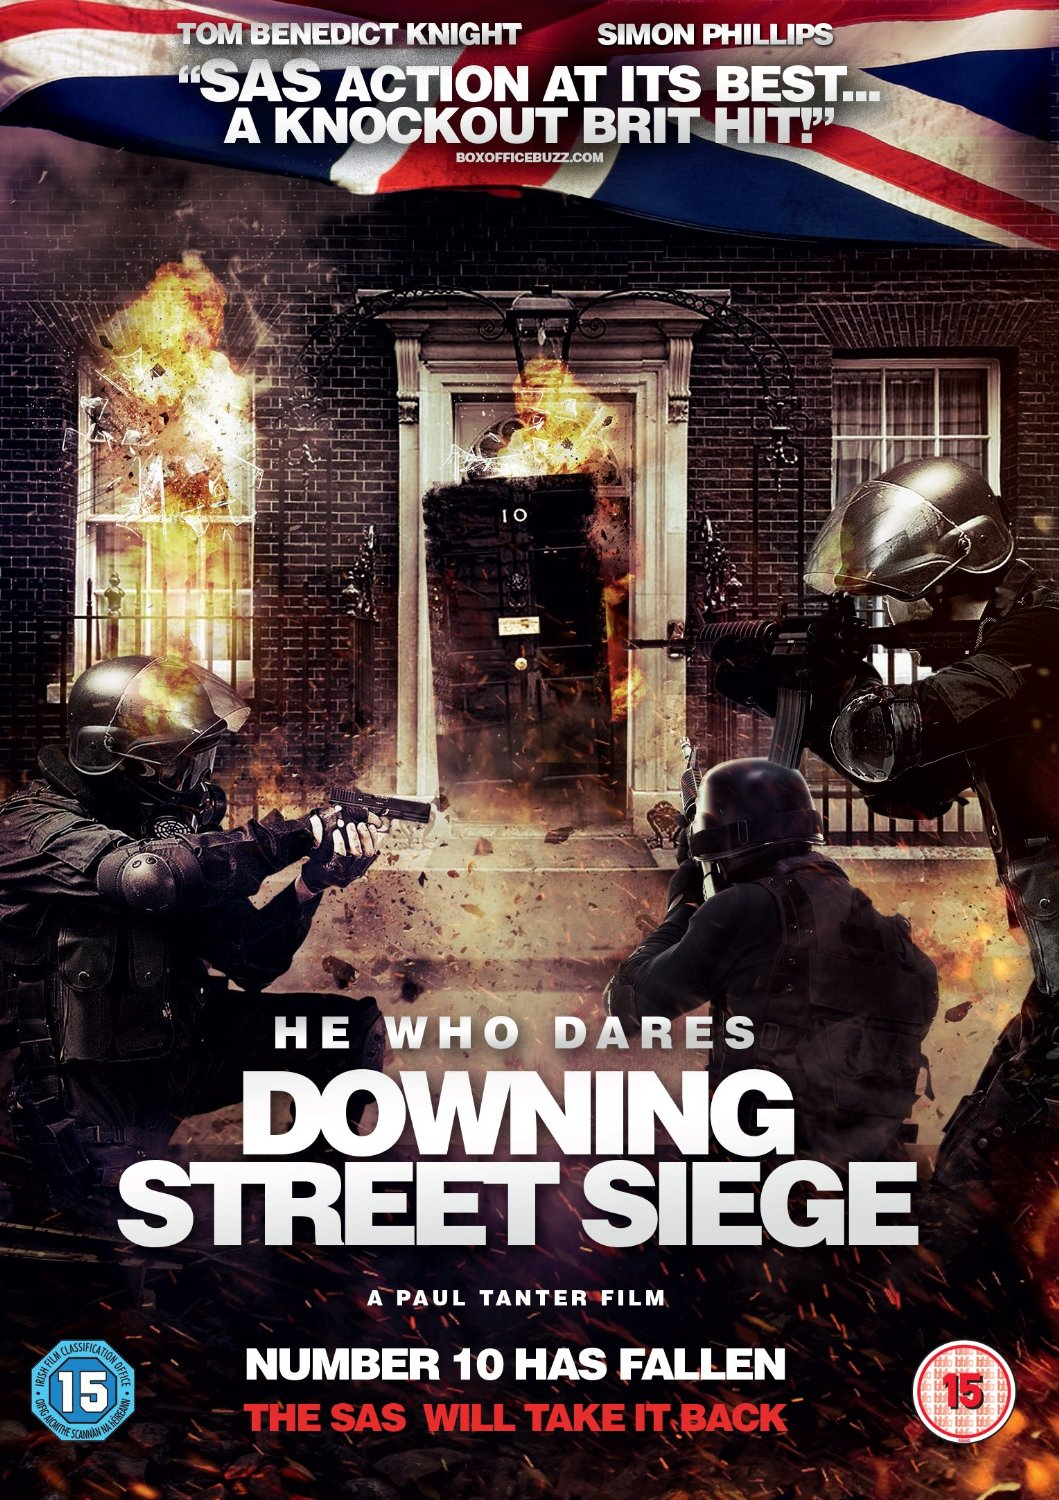 Poster film He Who Dares: Downing Street Siege.